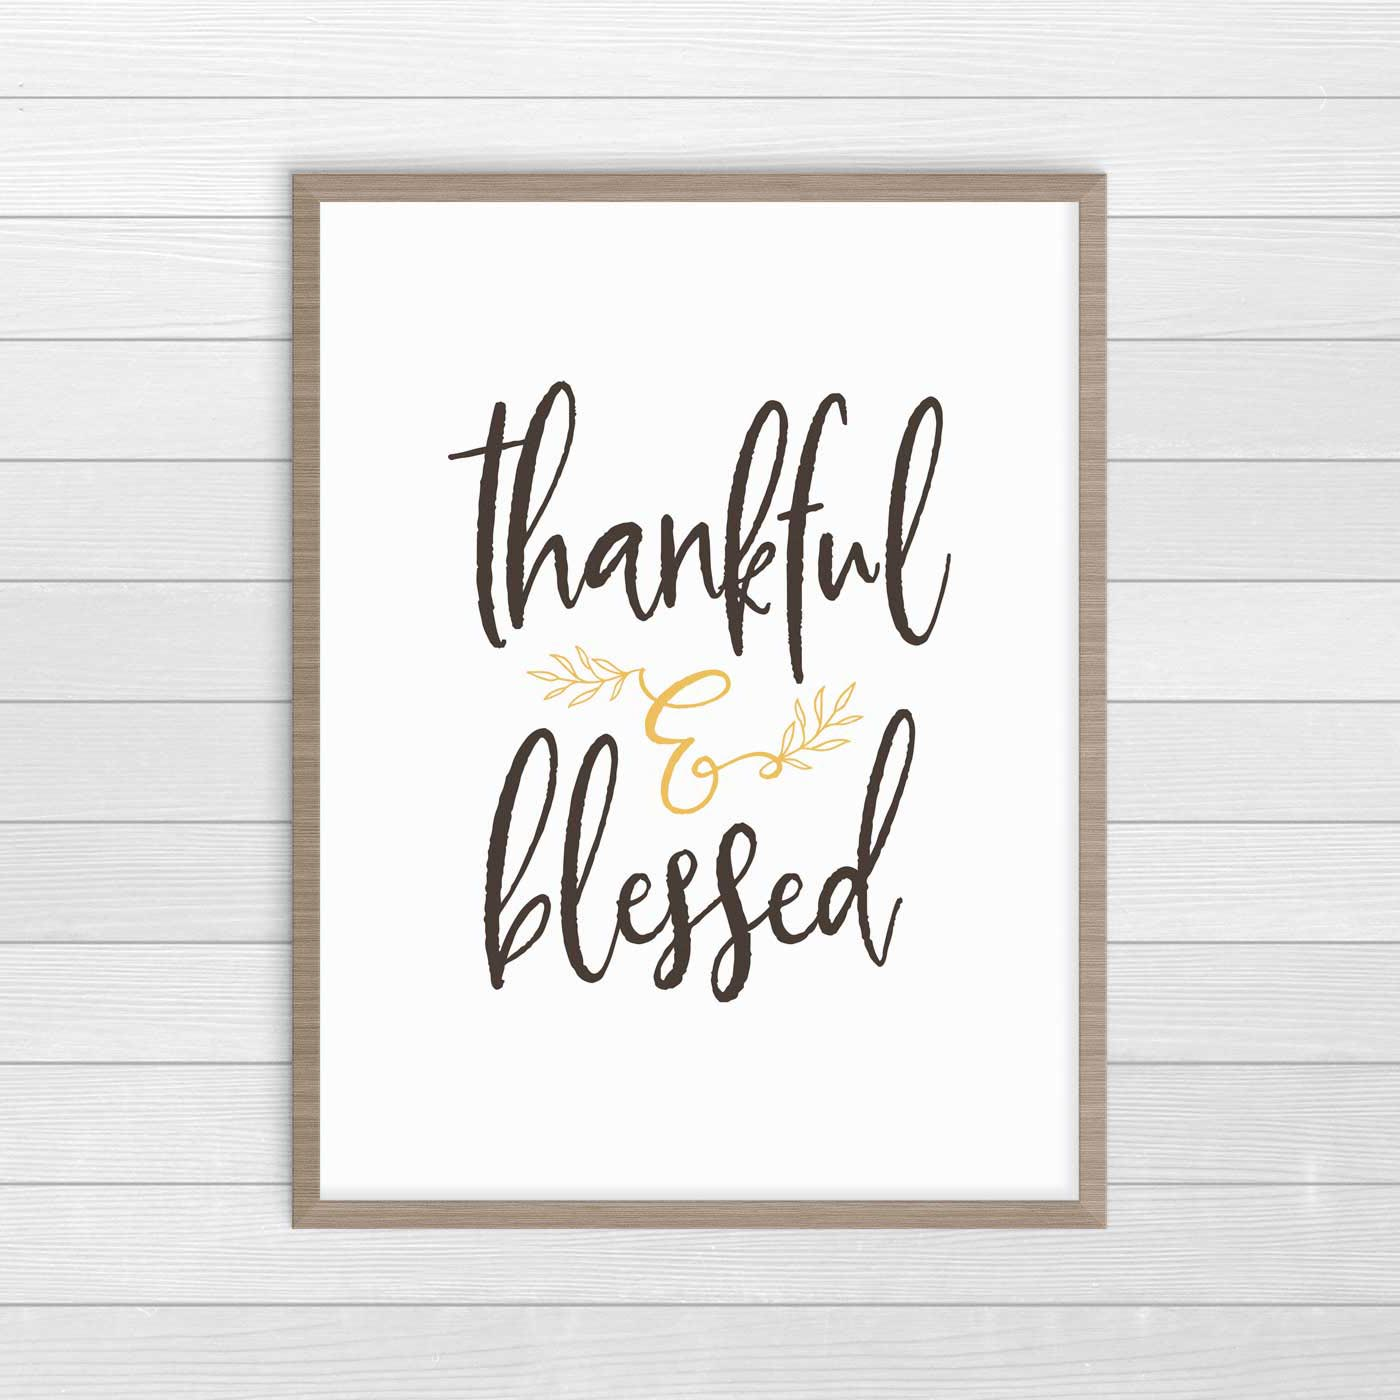 Loving this modern farmhouse Thanksgiving decor. These are free printable downloads. Click over to see all of them. #ThanksgivingDecor #FreePrintables #FarmhouseDecor